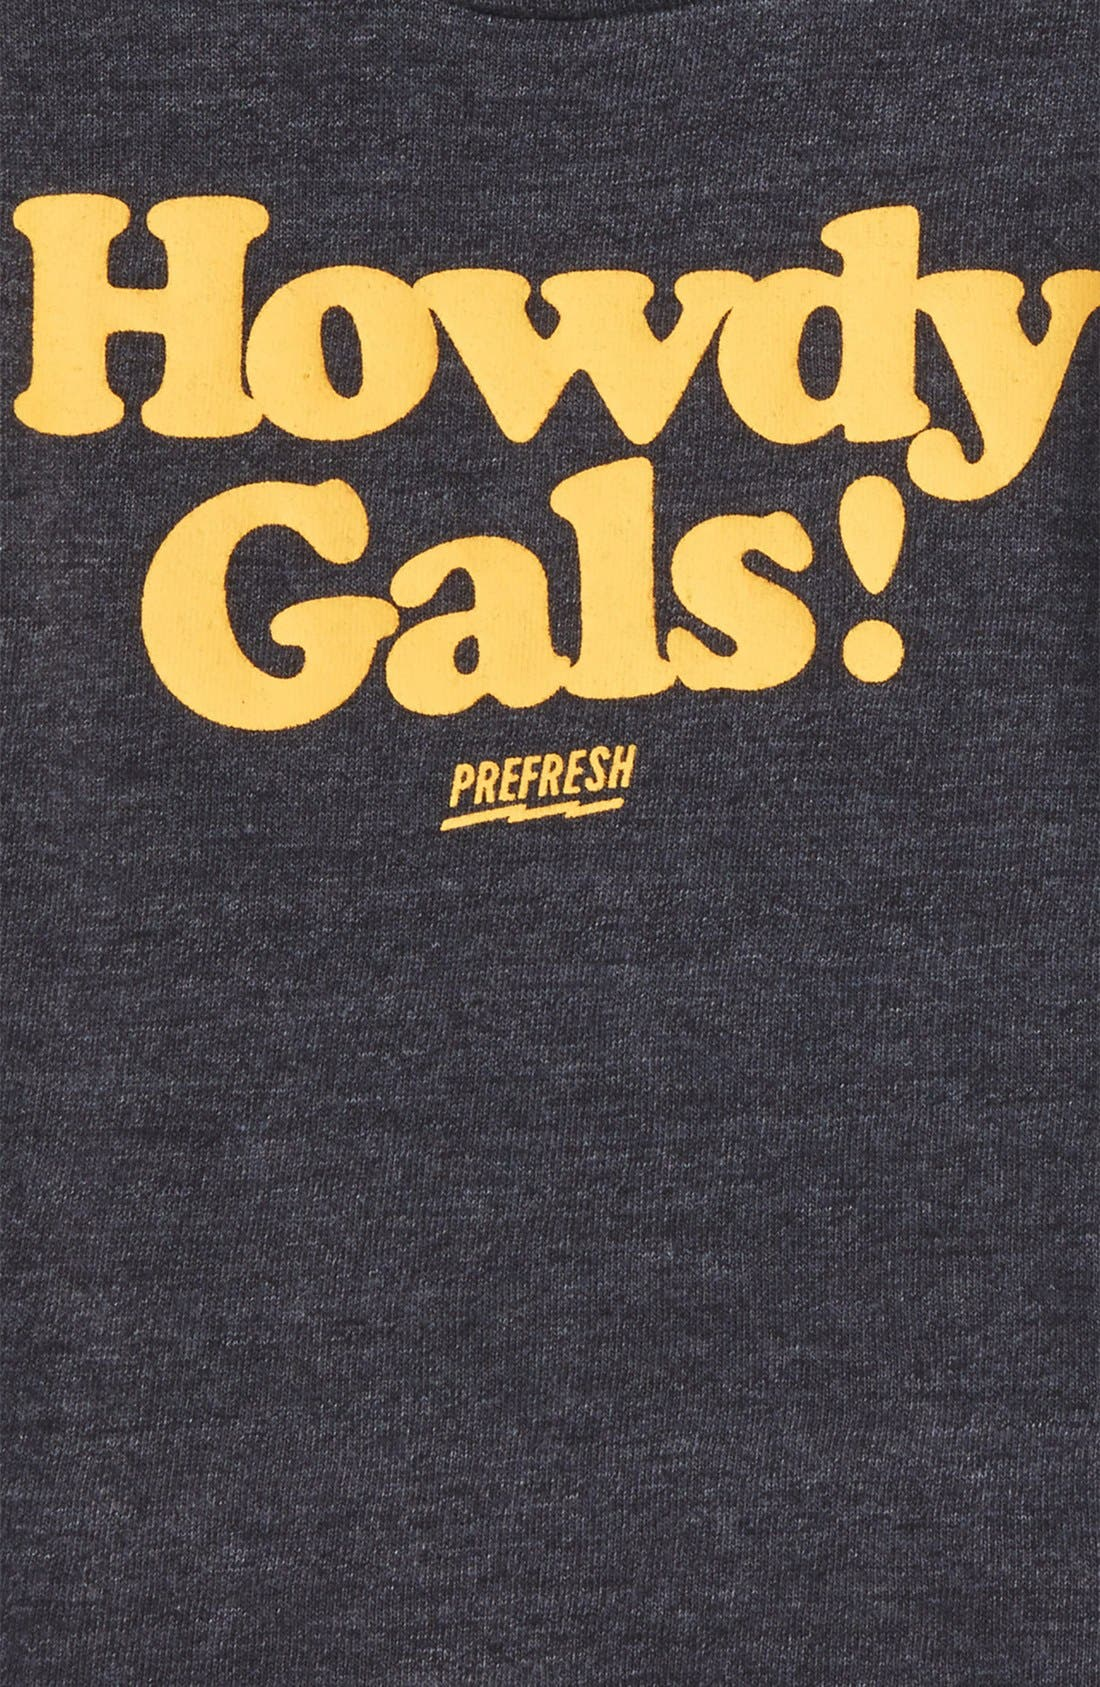 Howdy Gals Graphic T-Shirt,                             Alternate thumbnail 2, color,                             001